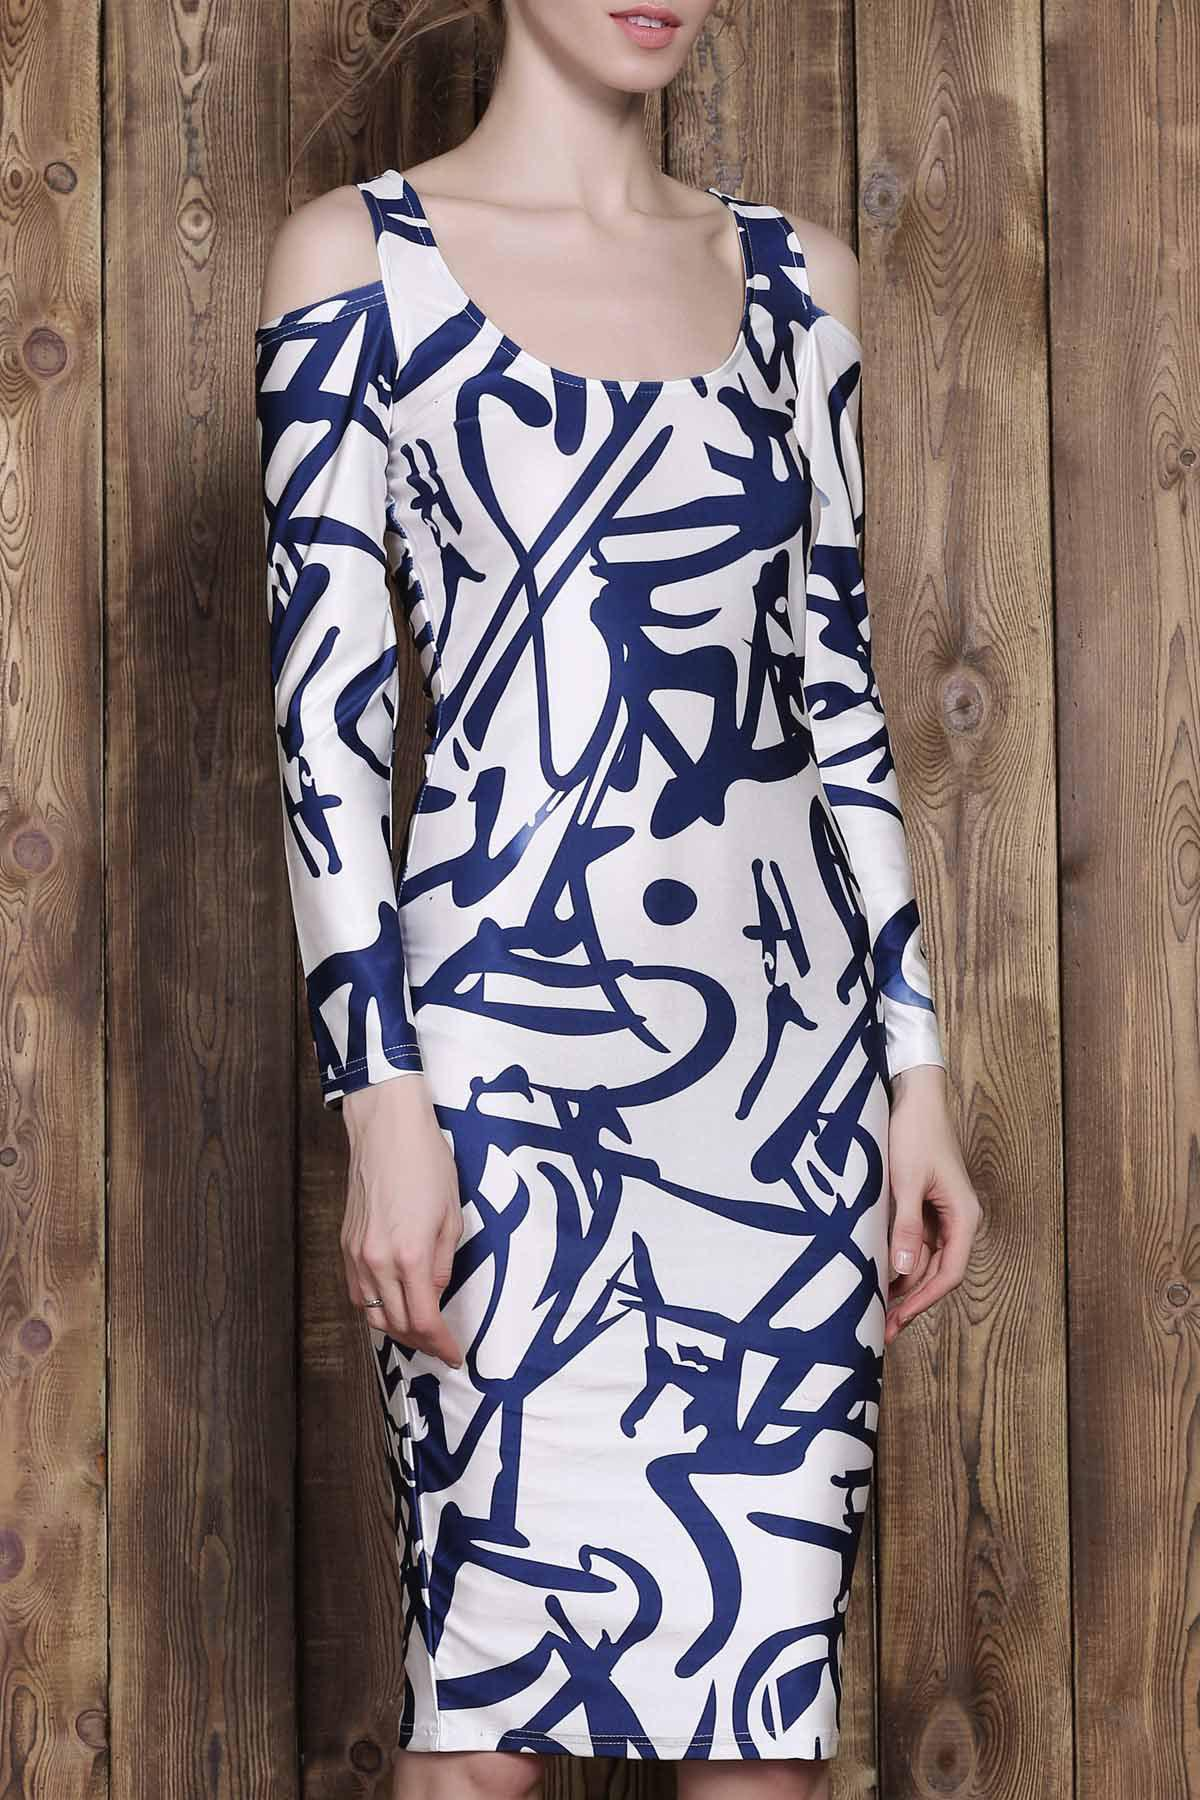 Trendy Printed U-Neck Shoulder Cut Out Long Sleeve Bodycon Dress For Women - COLORMIX S